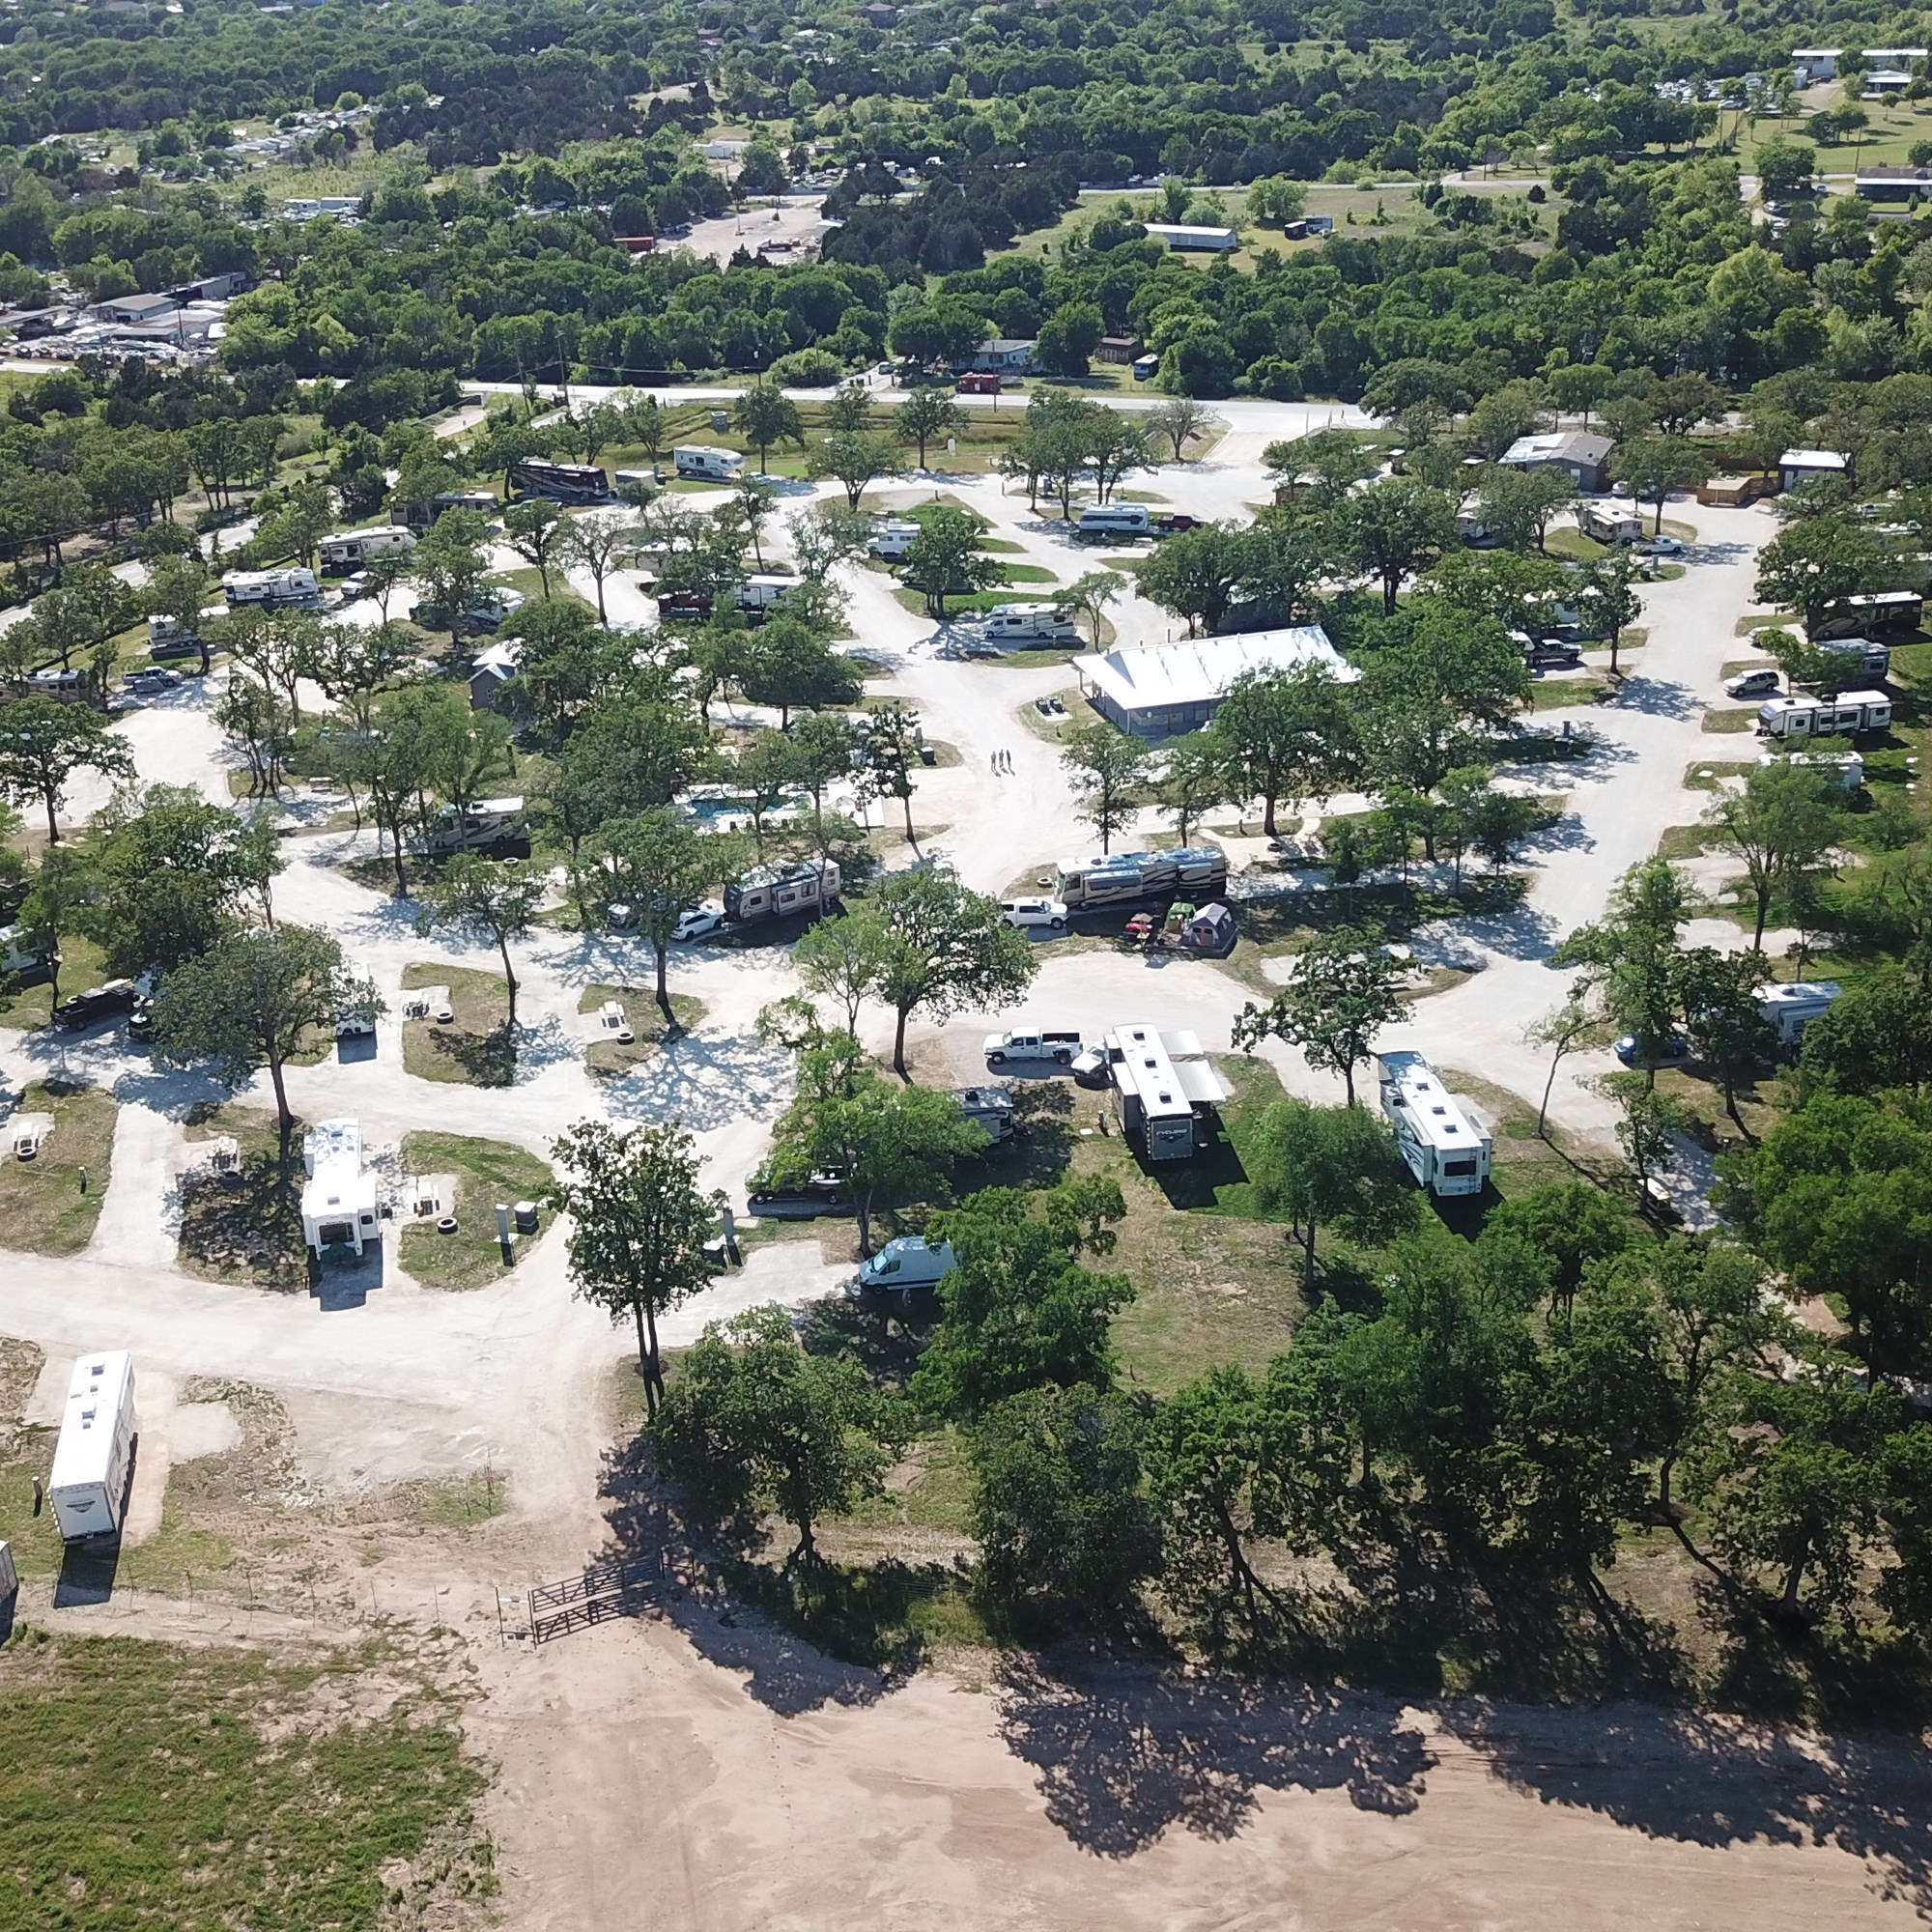 Austin, Texas Campground | Austin East KOA